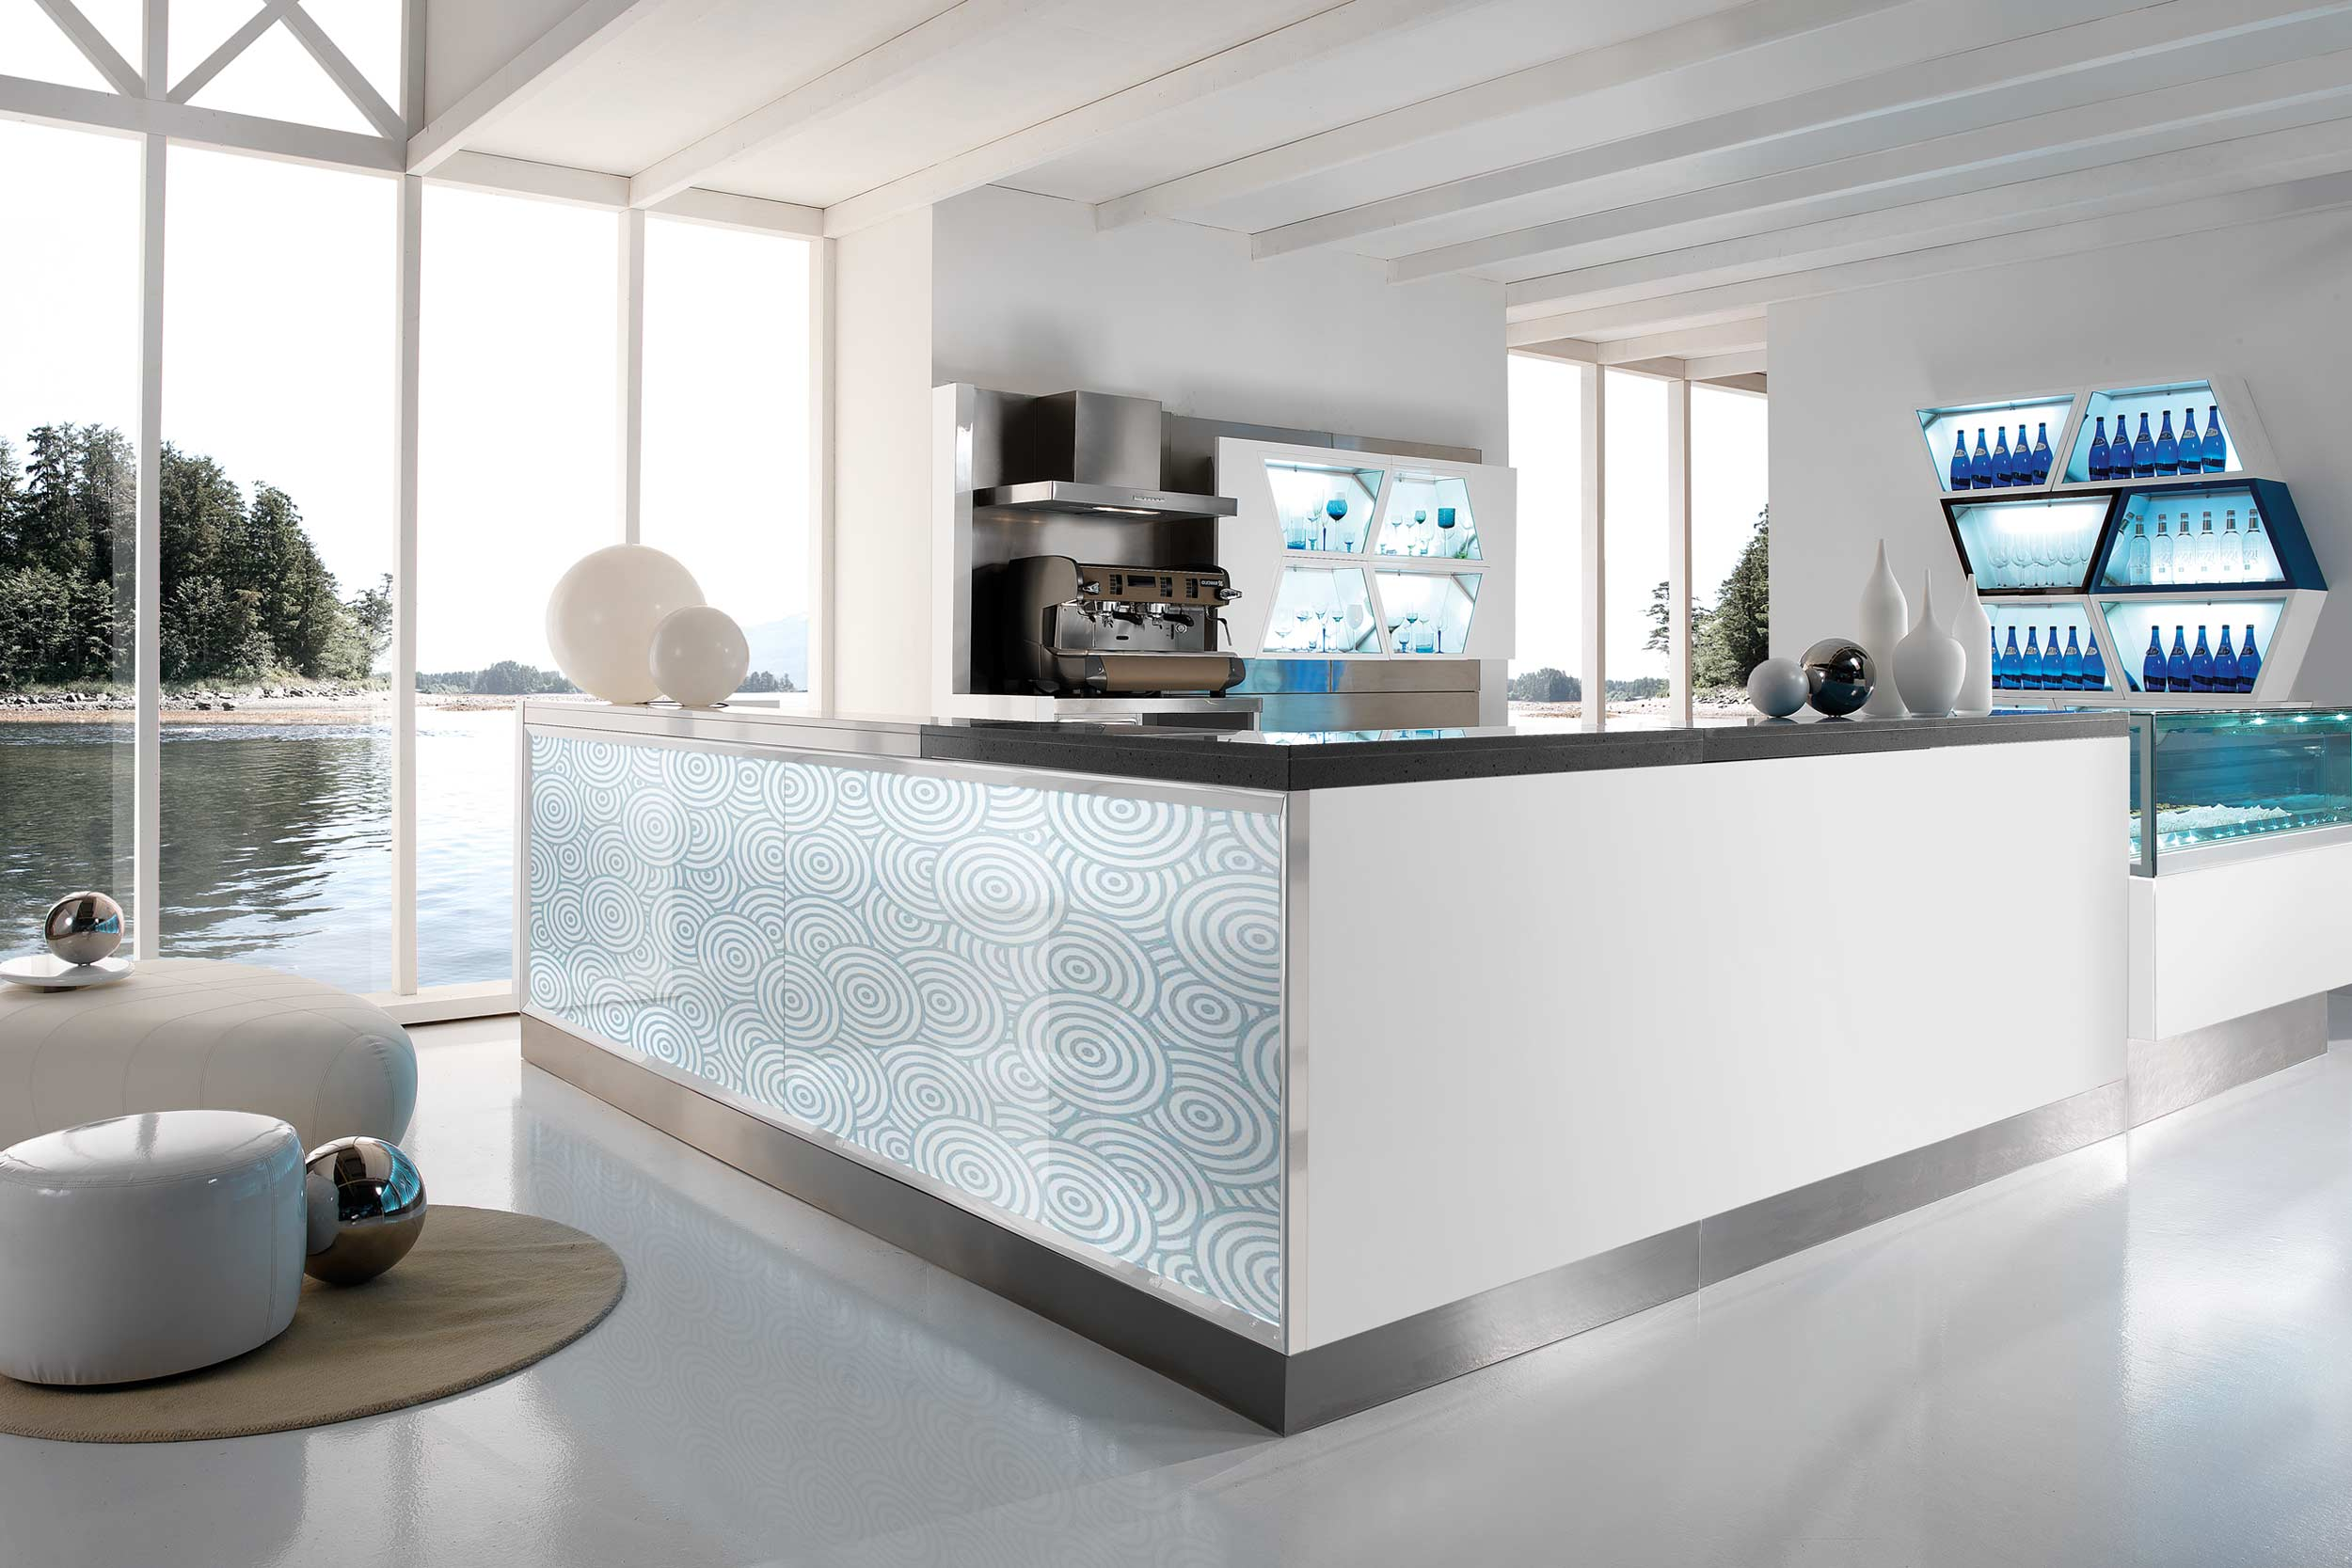 Arredo tata arredamento per bar artic for Artic arredo bar